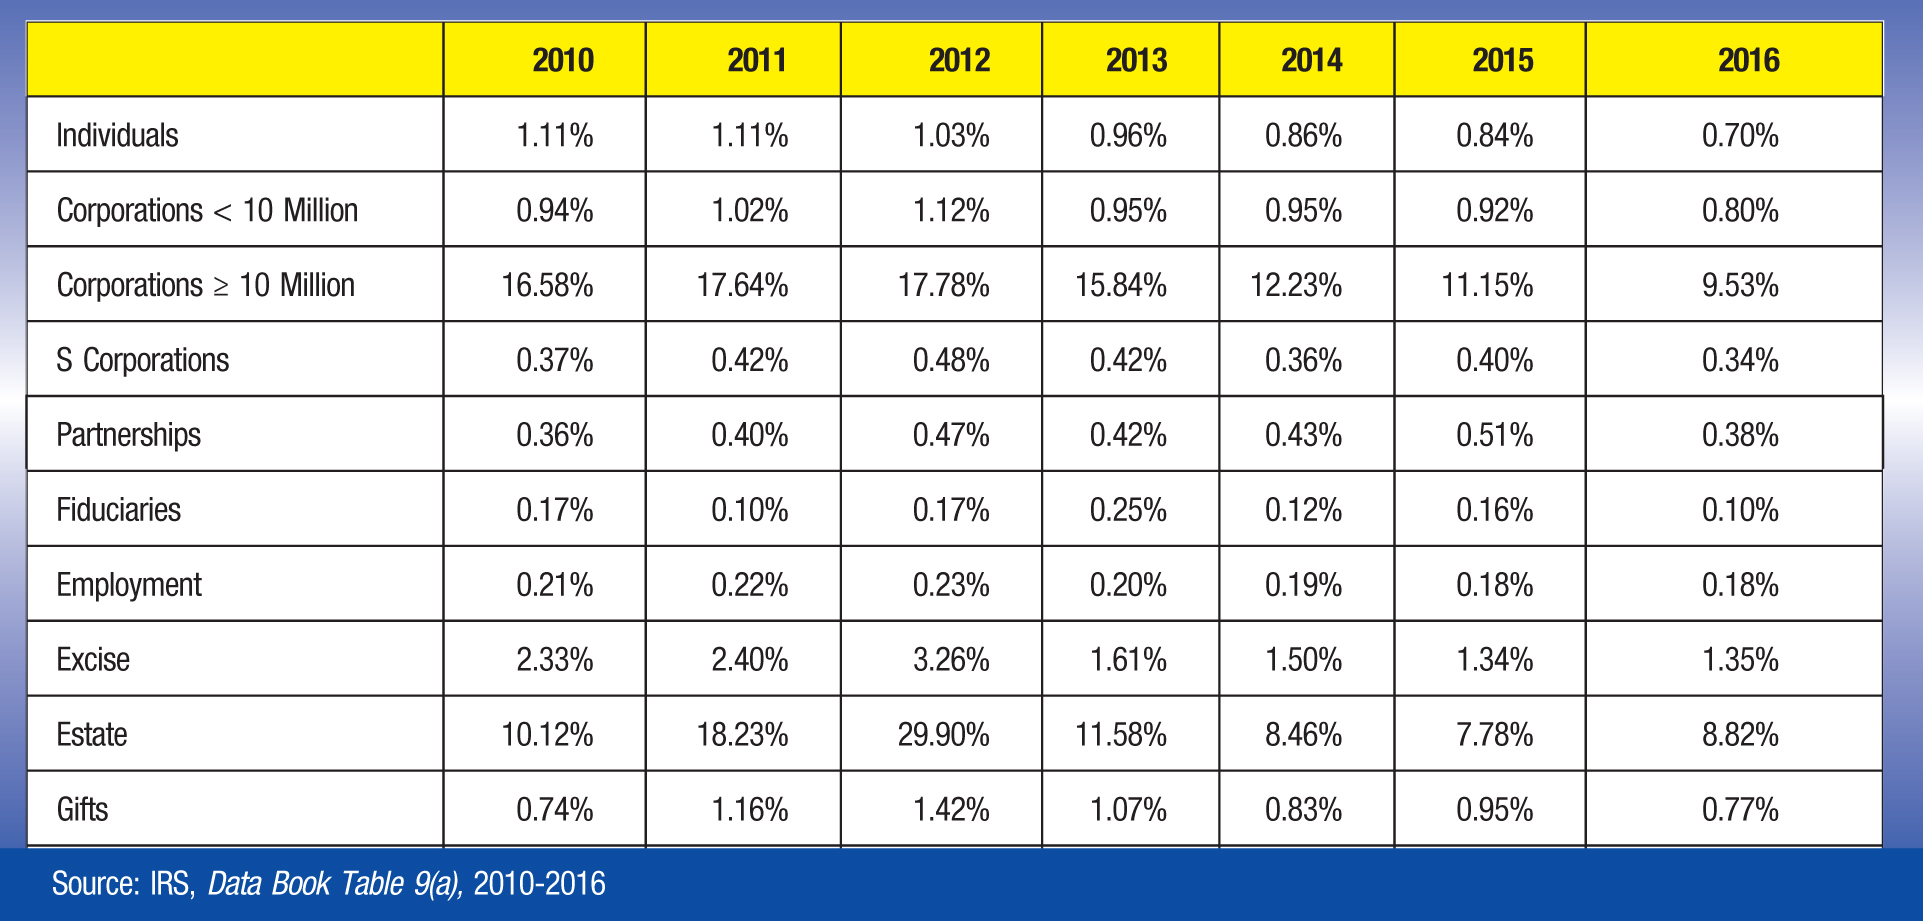 2010; 2011; 2012; 2013; 2014; 2015; 2016 Individuals; 1.11%; 1.11%; 1.03%; 0.96%; 0.86%; 0.84%; 0.70% Corporations< 10 Million; 0.94%; 1.02%; 1.12%; 0.95%; 0.95%; 0.92%; 0.80% Corporations ≥ 10 Million; 16.58%; 17.64%; 17.78%; 15.84%; 12.23%; 11.15%; 9.53% S Corporations; 0.37%; 0.42%; 0.48%; 0.42%; 0.36%; 0.40%; 0.34% Partnerships; 0.36%; 0.40%; 0.47%; 0.42%; 0.43%; 0.51%; 0.38% Fiduciaries; 0.17%; 0.10%; 0.17%; 0.25%; 0.12%; 0.16%; 0.10% Employment; 0.21%; 0.22%; 0.23%; 0.20%; 0.19%; 0.18%; 0.18% Excise; 2.33%; 2.40%; 3.26%; 1.61%; 1.50%; 1.34%; 1.35% Estate; 10.12%; 18.23%; 29.90%; 11.58%; 8.46%; 7.78%; 8.82% Gifts; 0.74%; 1.16%; 1.42%; 1.07%; 0.83%; 0.95%; 0.77% Source: IRS, Data Book Table 9(a), 2010-2016